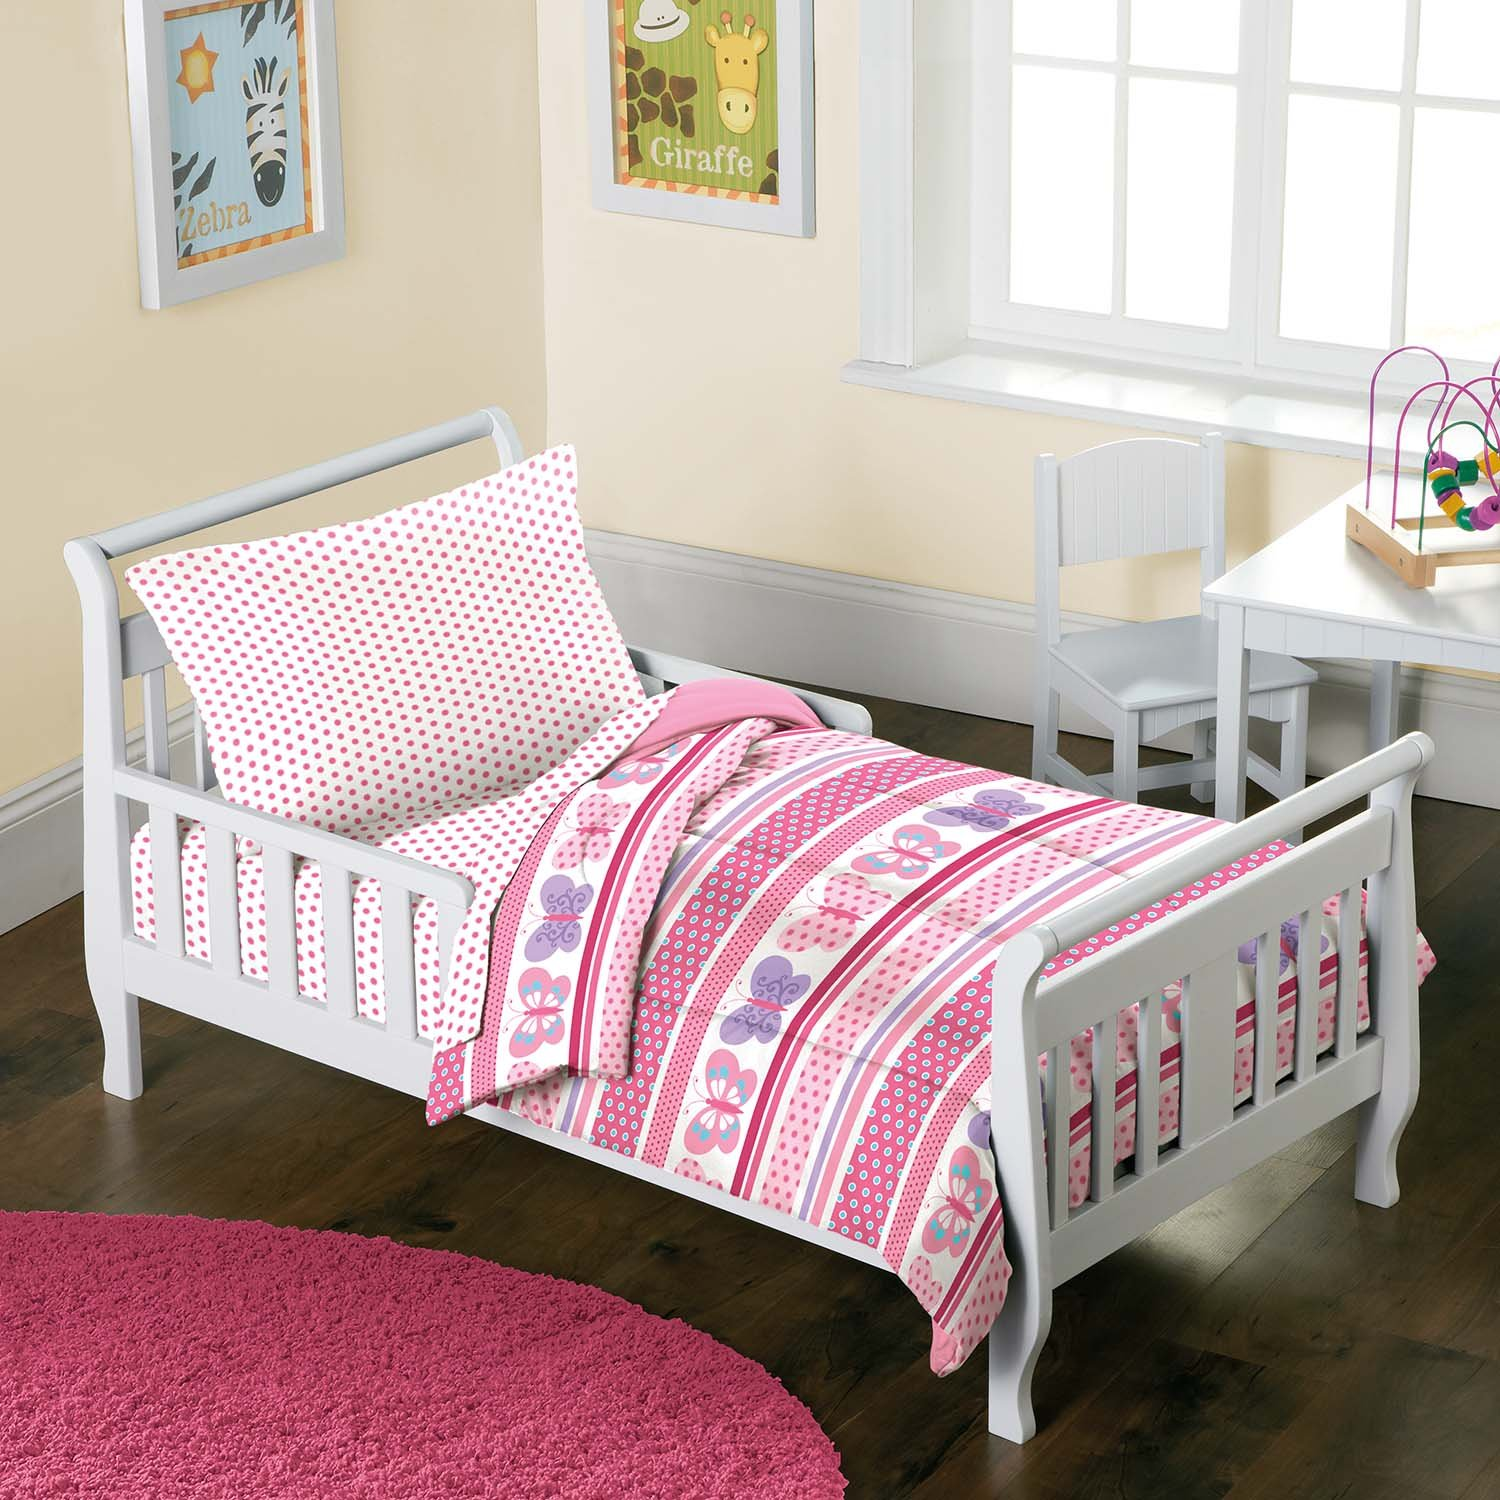 fusion butterflies decor size plain white pictures image catherine duvets pink ideas full home bedding furniture queen innovative decorative king lansfield double shams of bedroom covers reversible fusionar duvet with girls standard single set silk purple cover butterfly comforter pillows for christmas